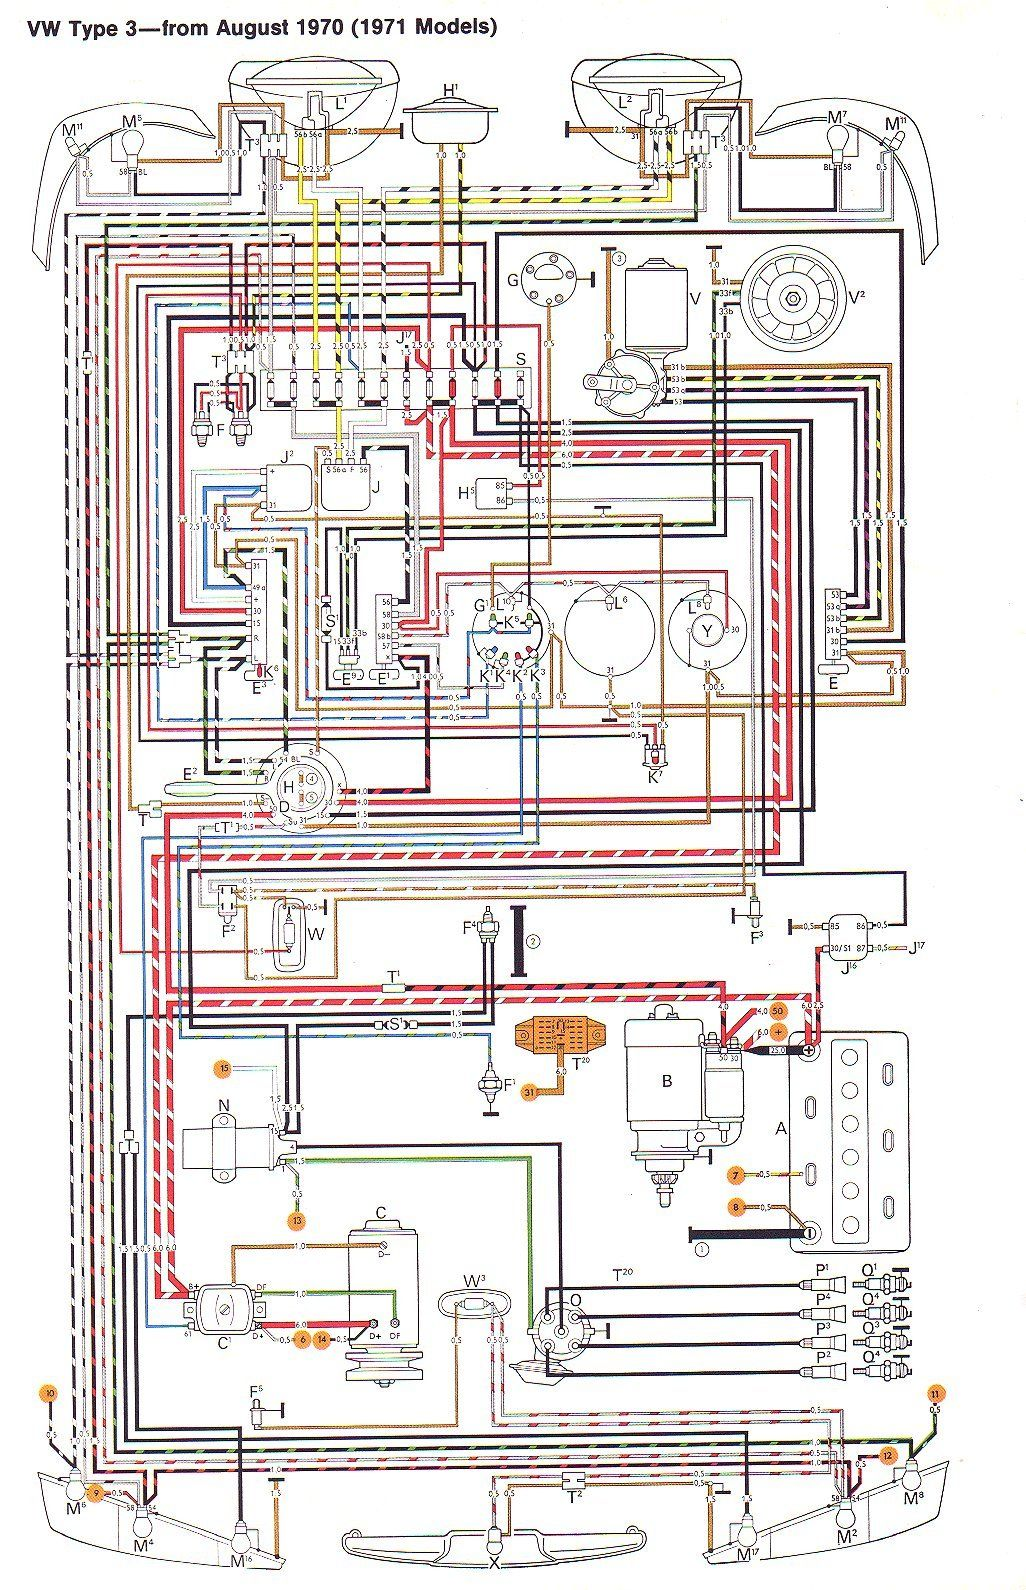 e0db58370f79a63d02d45f00cf63f44a 71 vw t3 wiring diagram ruthie pinterest volkswagen, engine vw engine wiring diagram at mr168.co